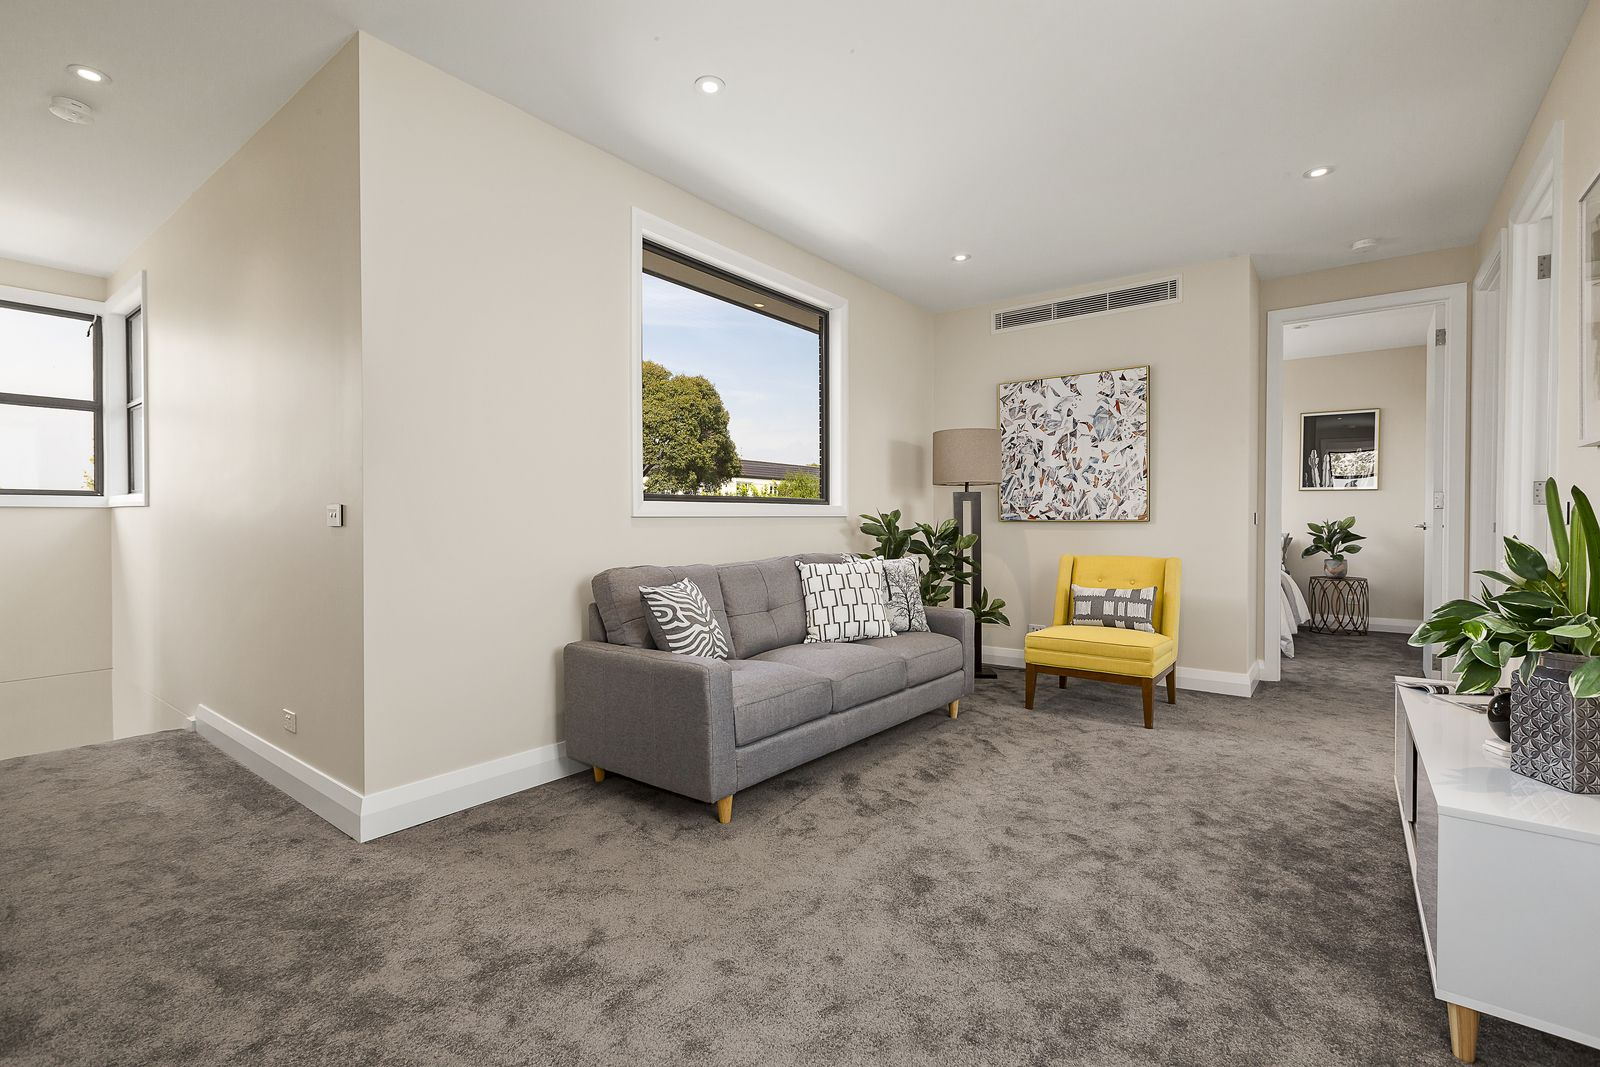 3/34 Donna Buang Street, Camberwell VIC 3124, Image 2